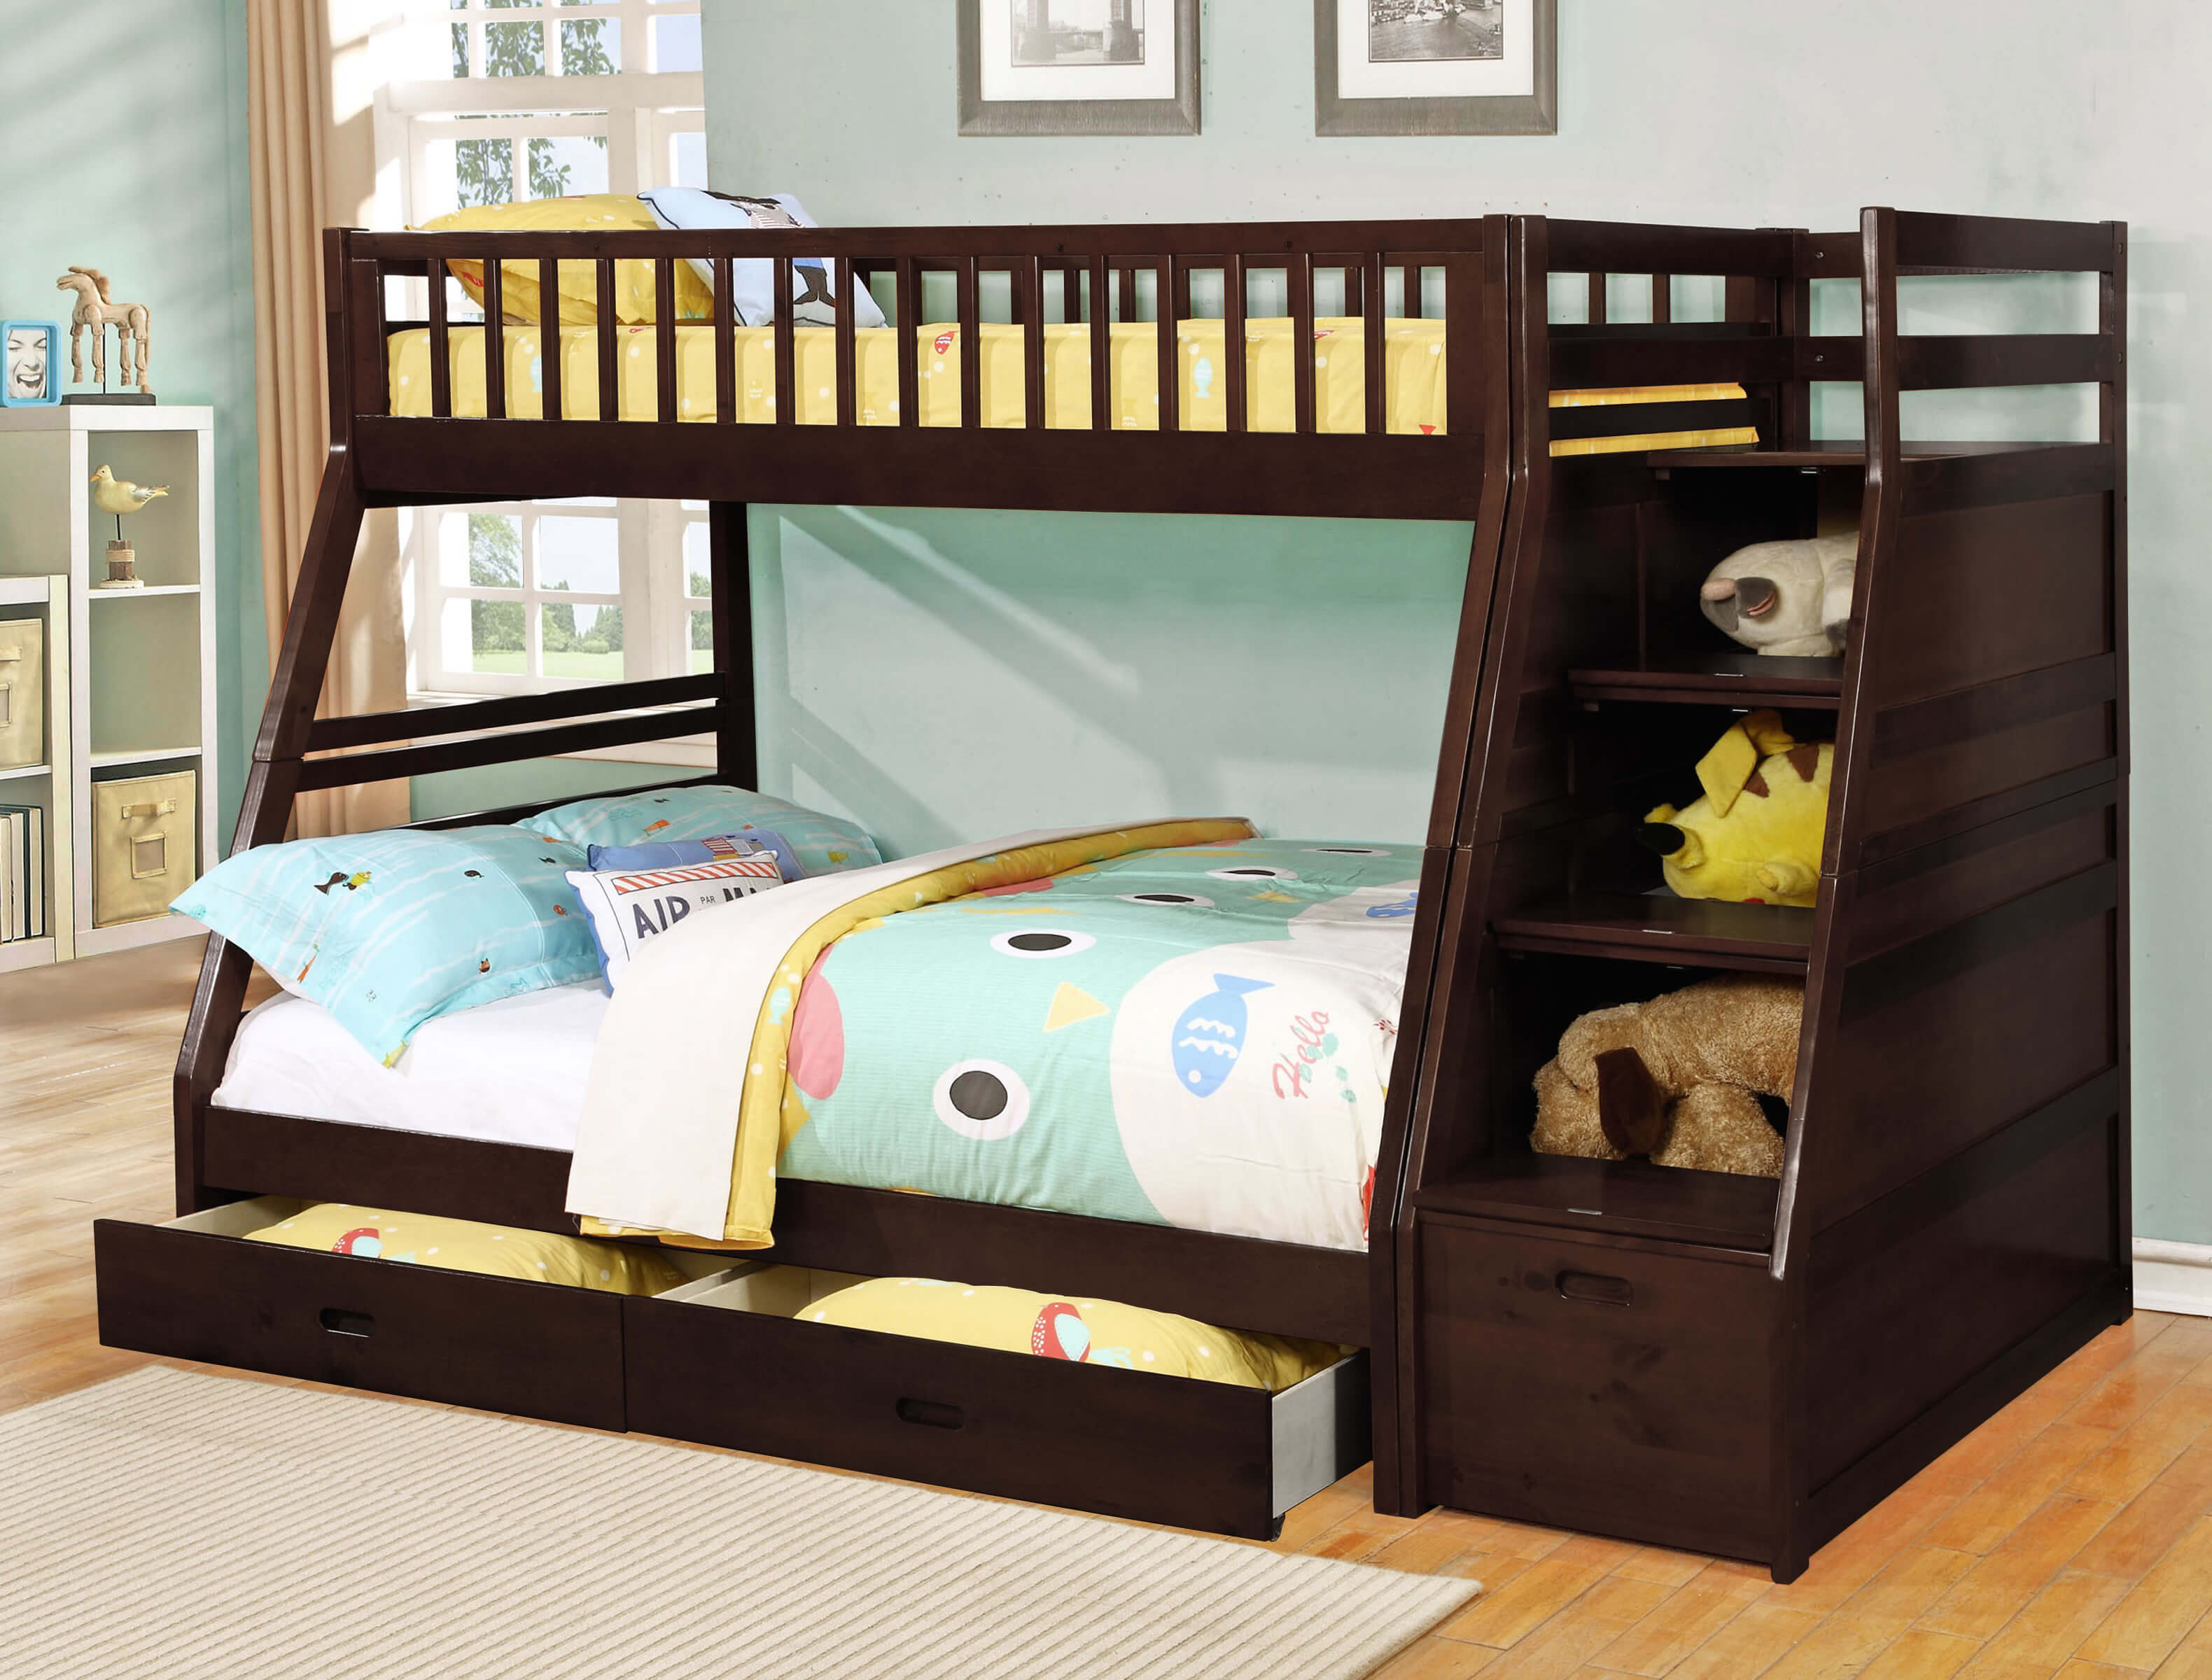 Best Boys Beds 24 Designs Of Bunk Beds With Steps Kids Love These